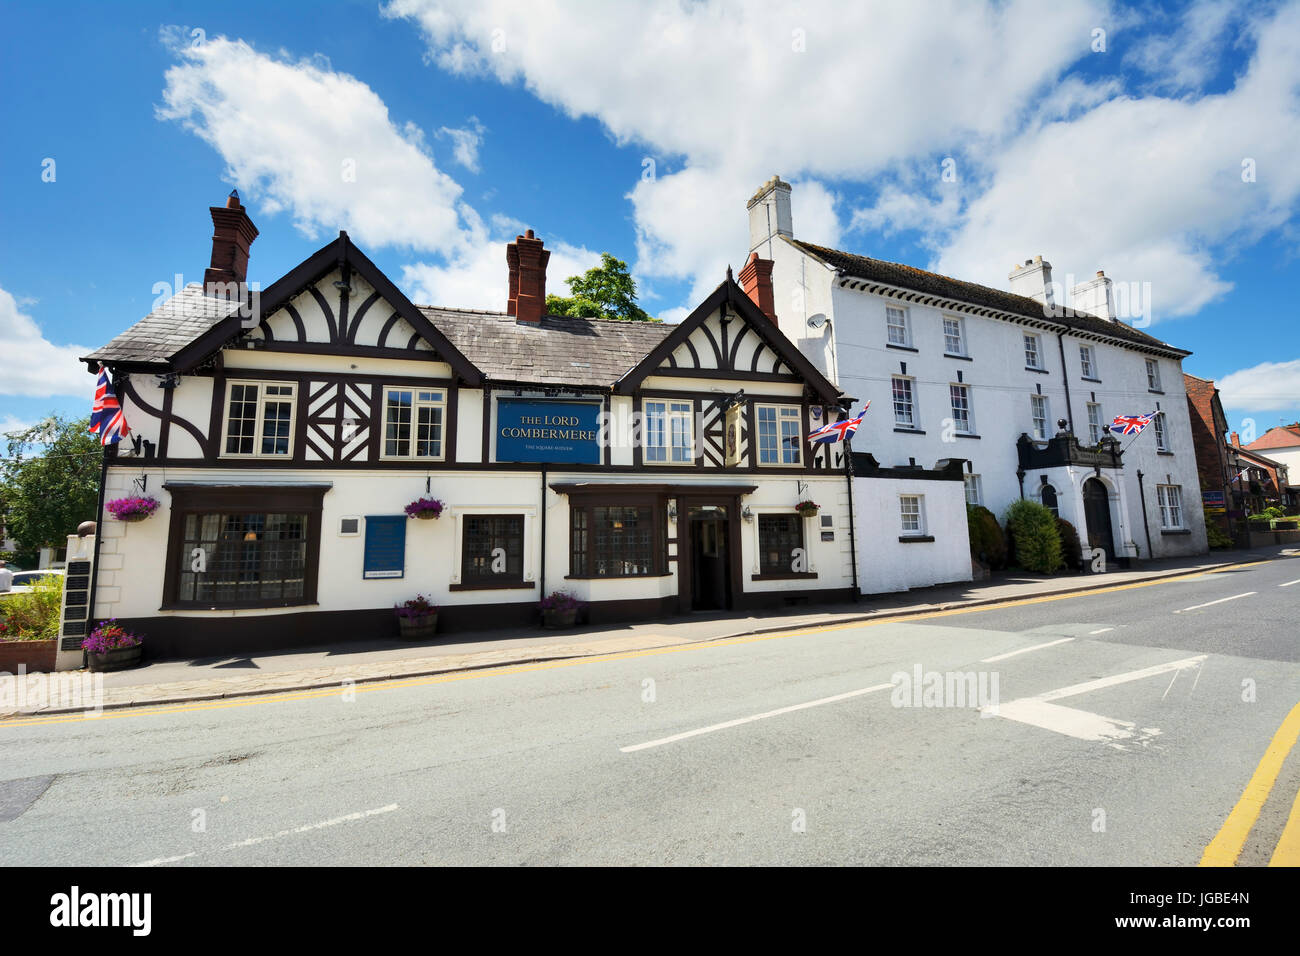 Audlem - The Lord Combermere public house in the Cheshire Village of Audlem. The Shropshire Union canal passes through - Stock Image